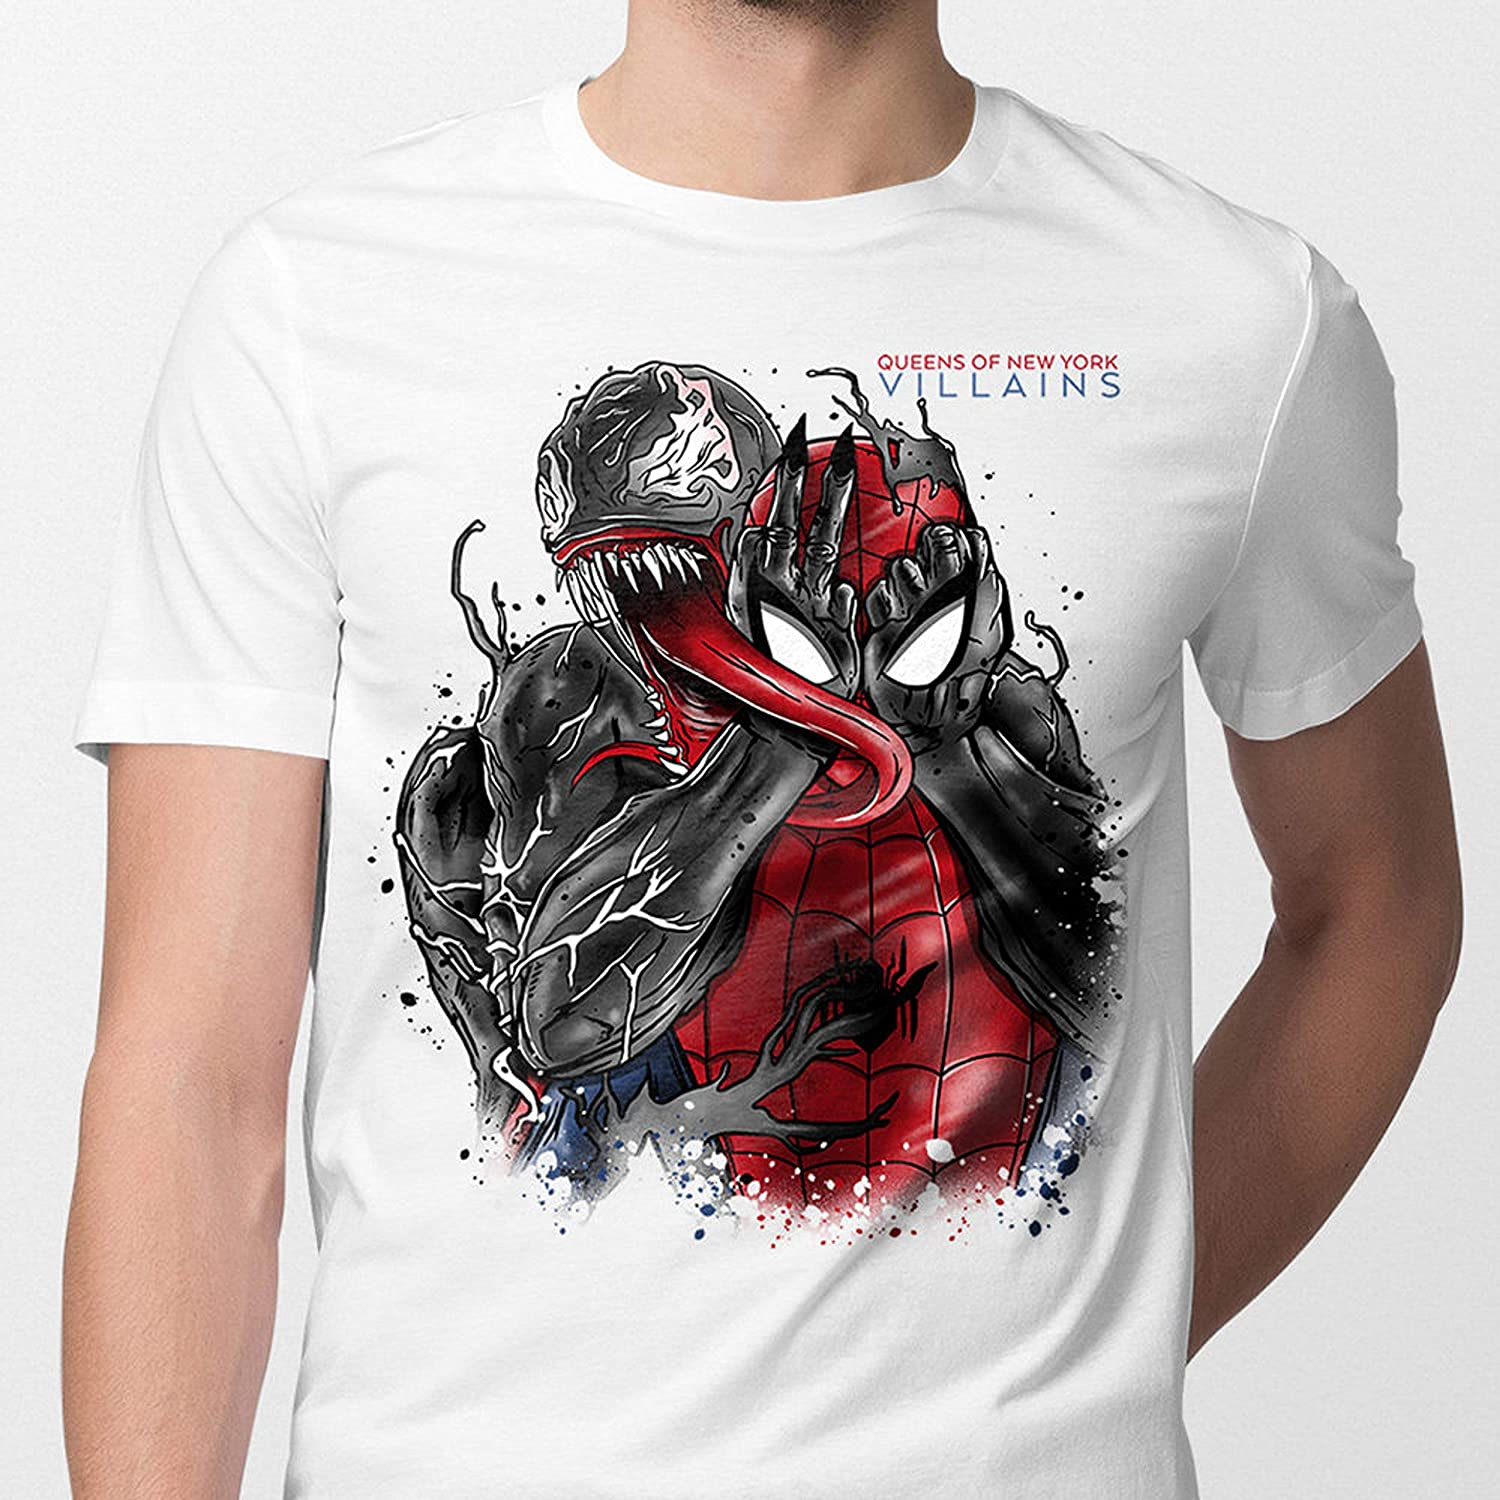 Unisex Girls /& Boys T shirt Tee Clothing Venom Marvel Comics Spider Man